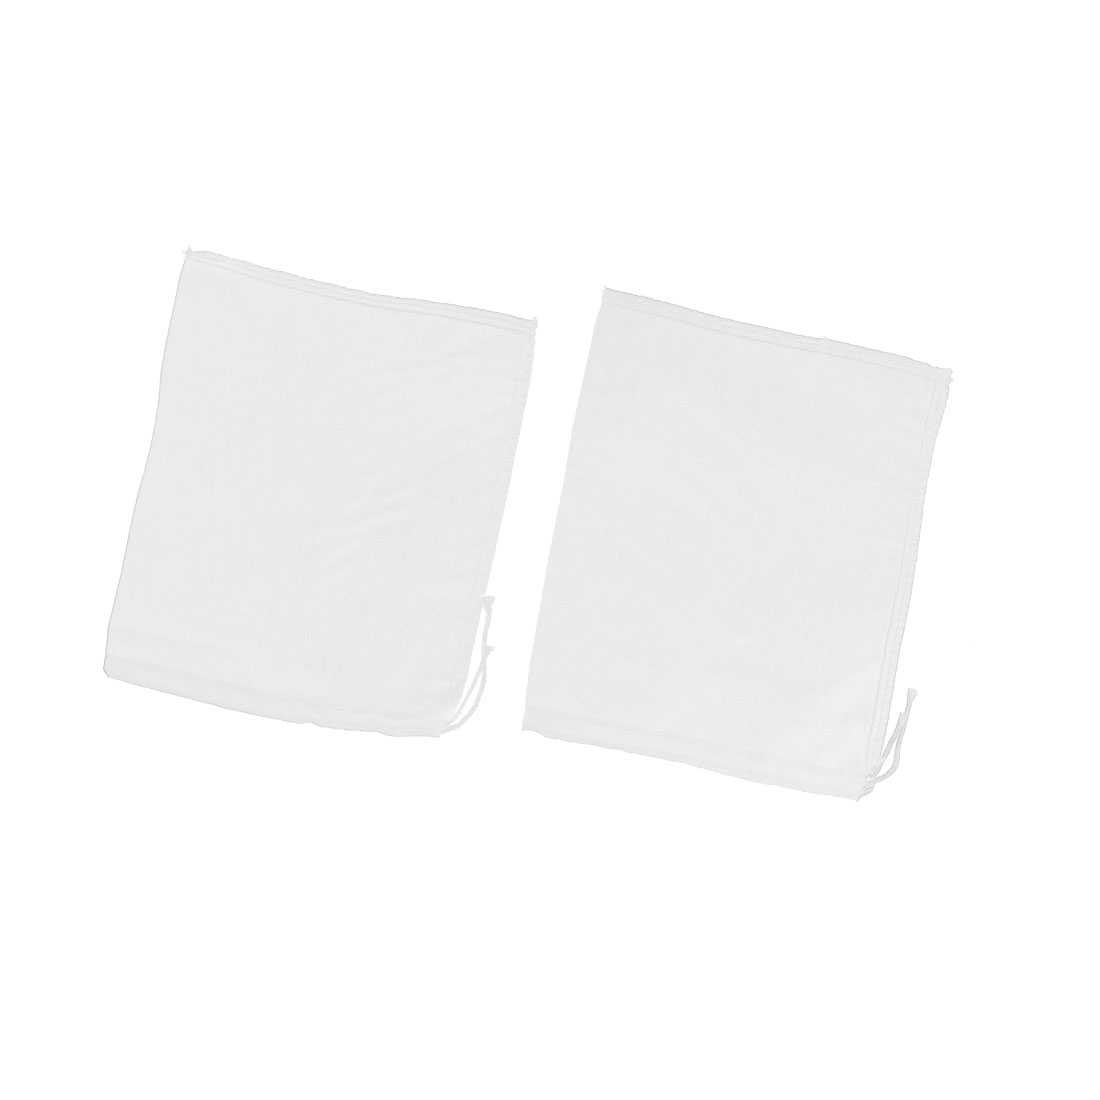 2 Pcs Drawstring Seal Soup Food Filter Mesh Bag 22cm x 18cm White